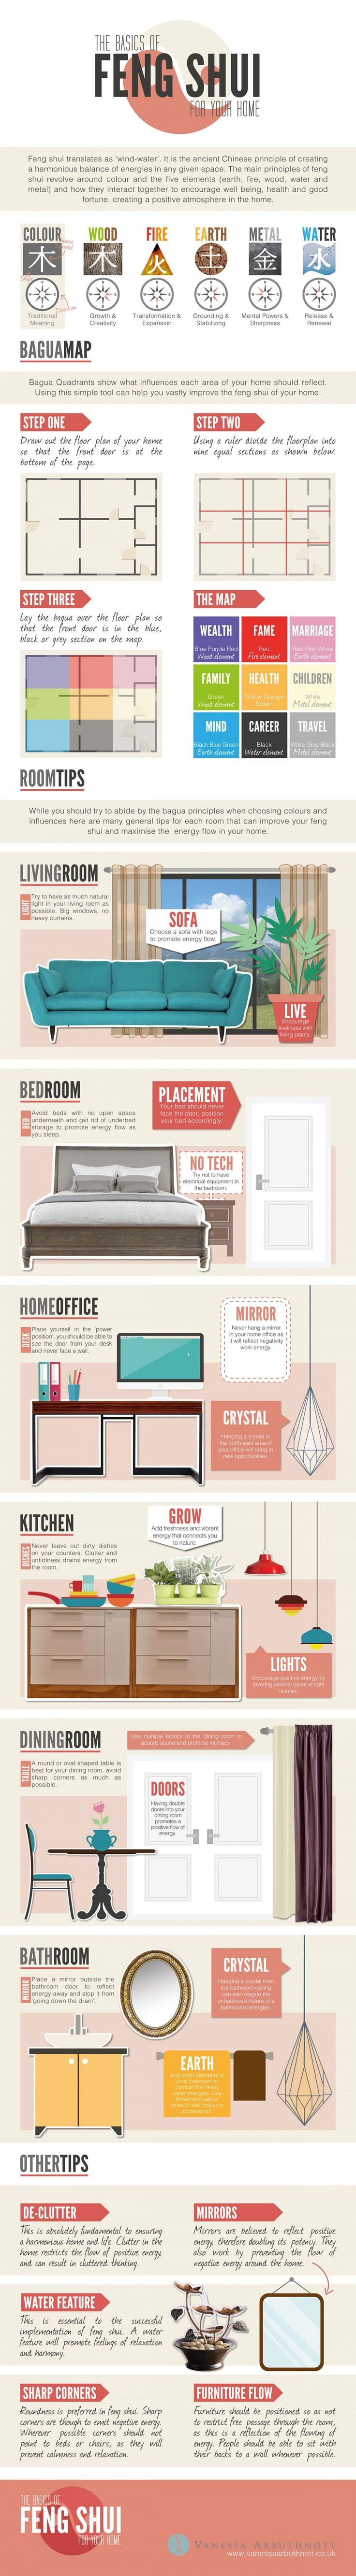 The Basics Of Feng Shui For Your Home #Infographic